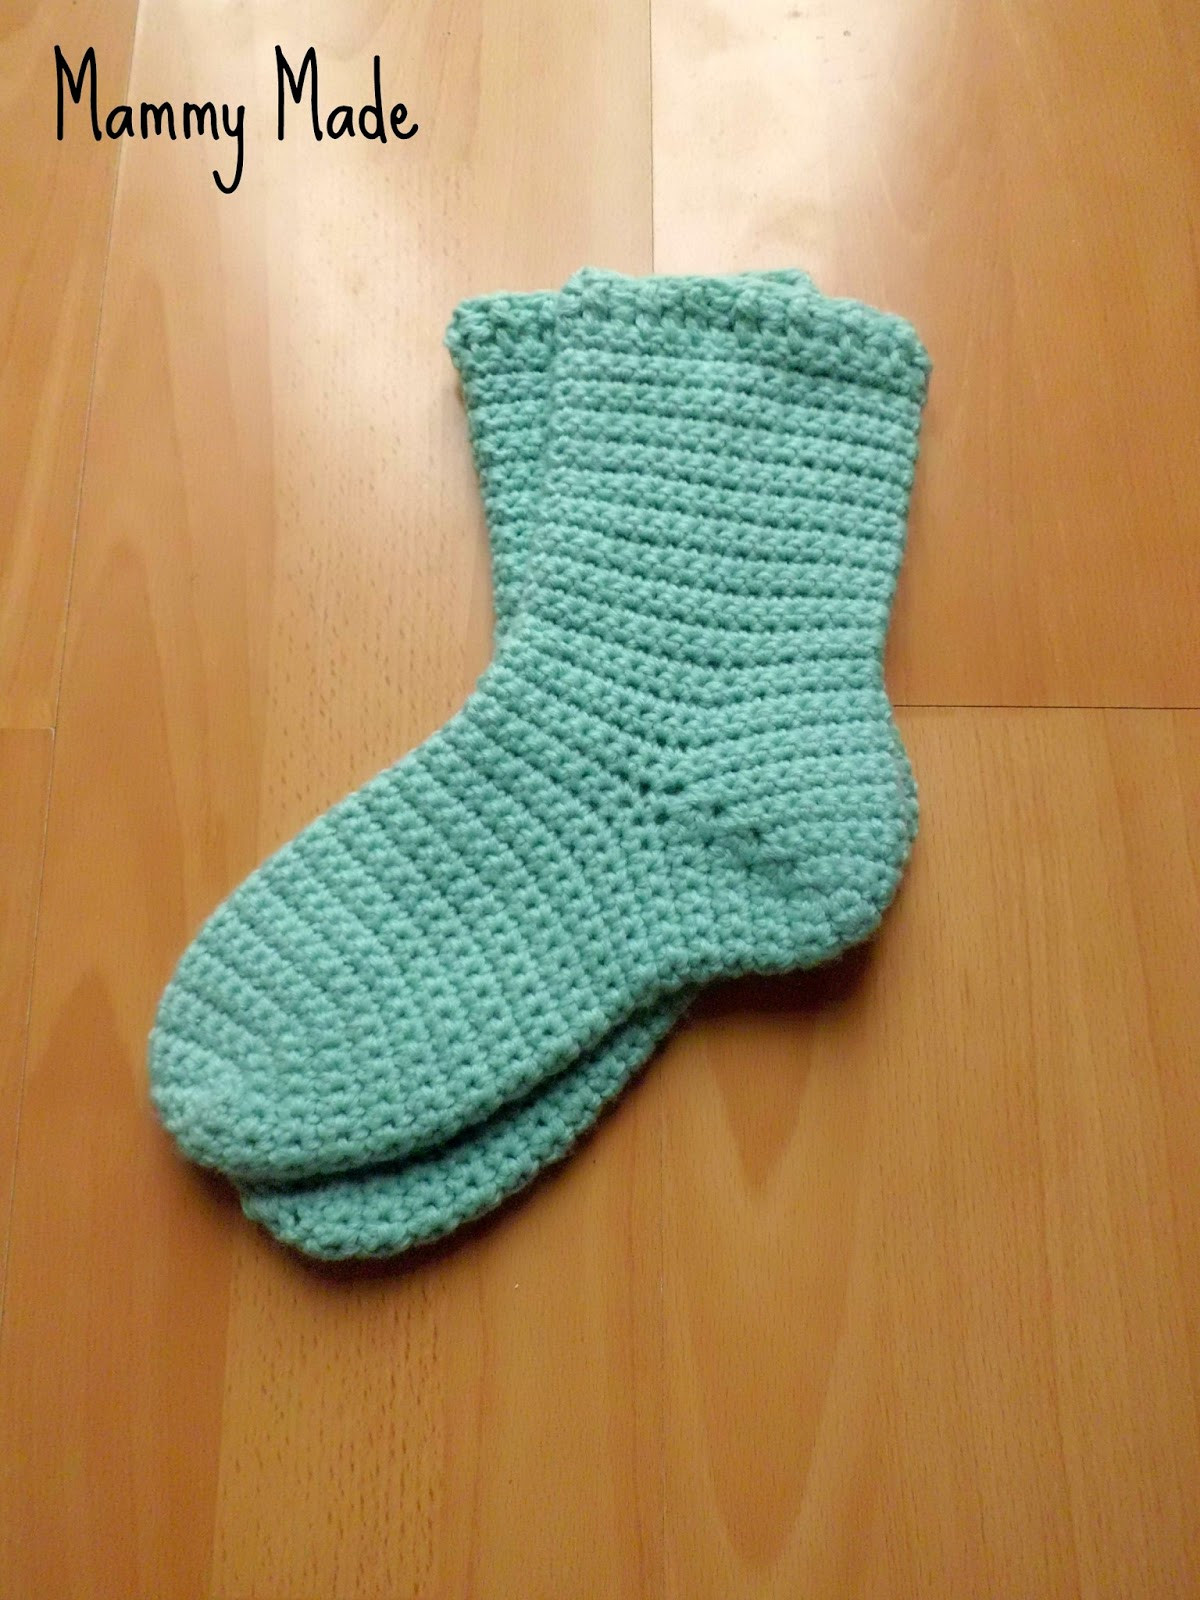 Crochet Sock Pattern : Mammy Made: Crochet Chunky Socks Pattern